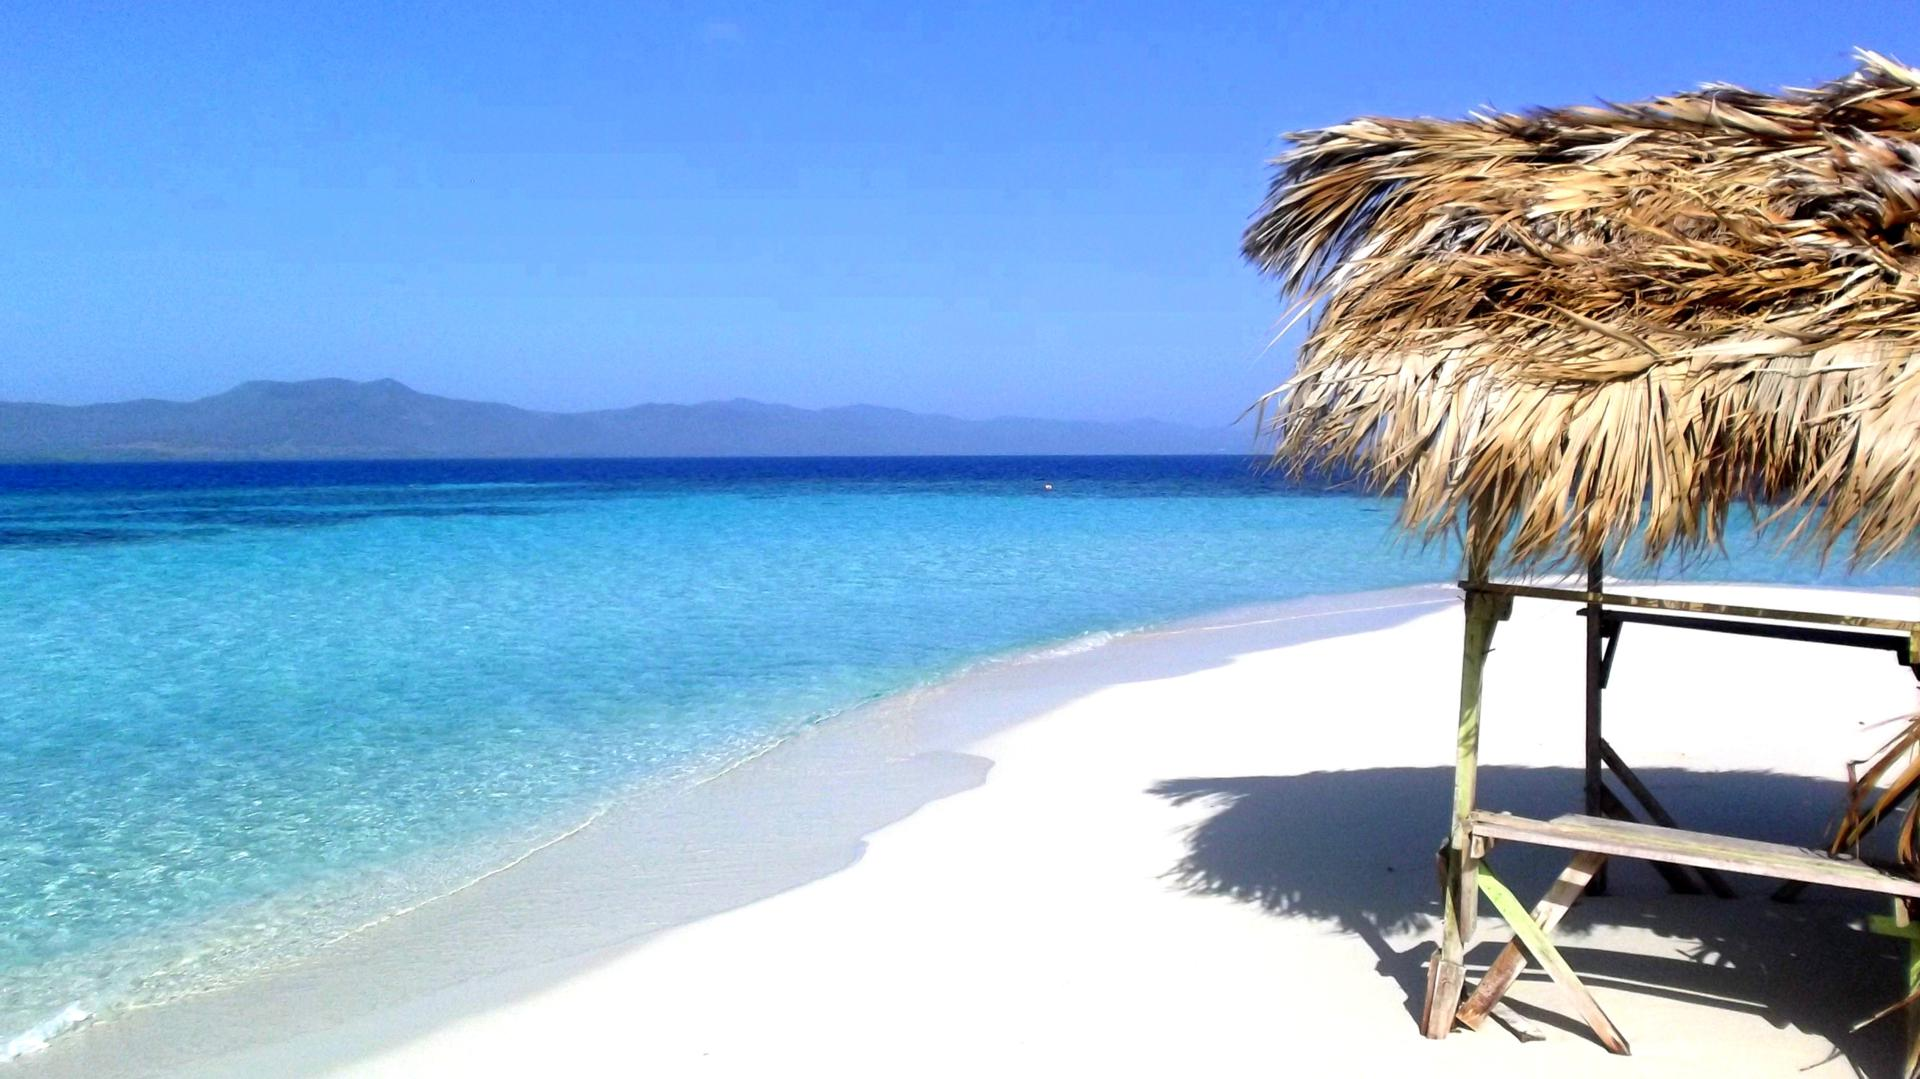 The paradise of Cayo Arena - a stunning excursion from Punta Rucia